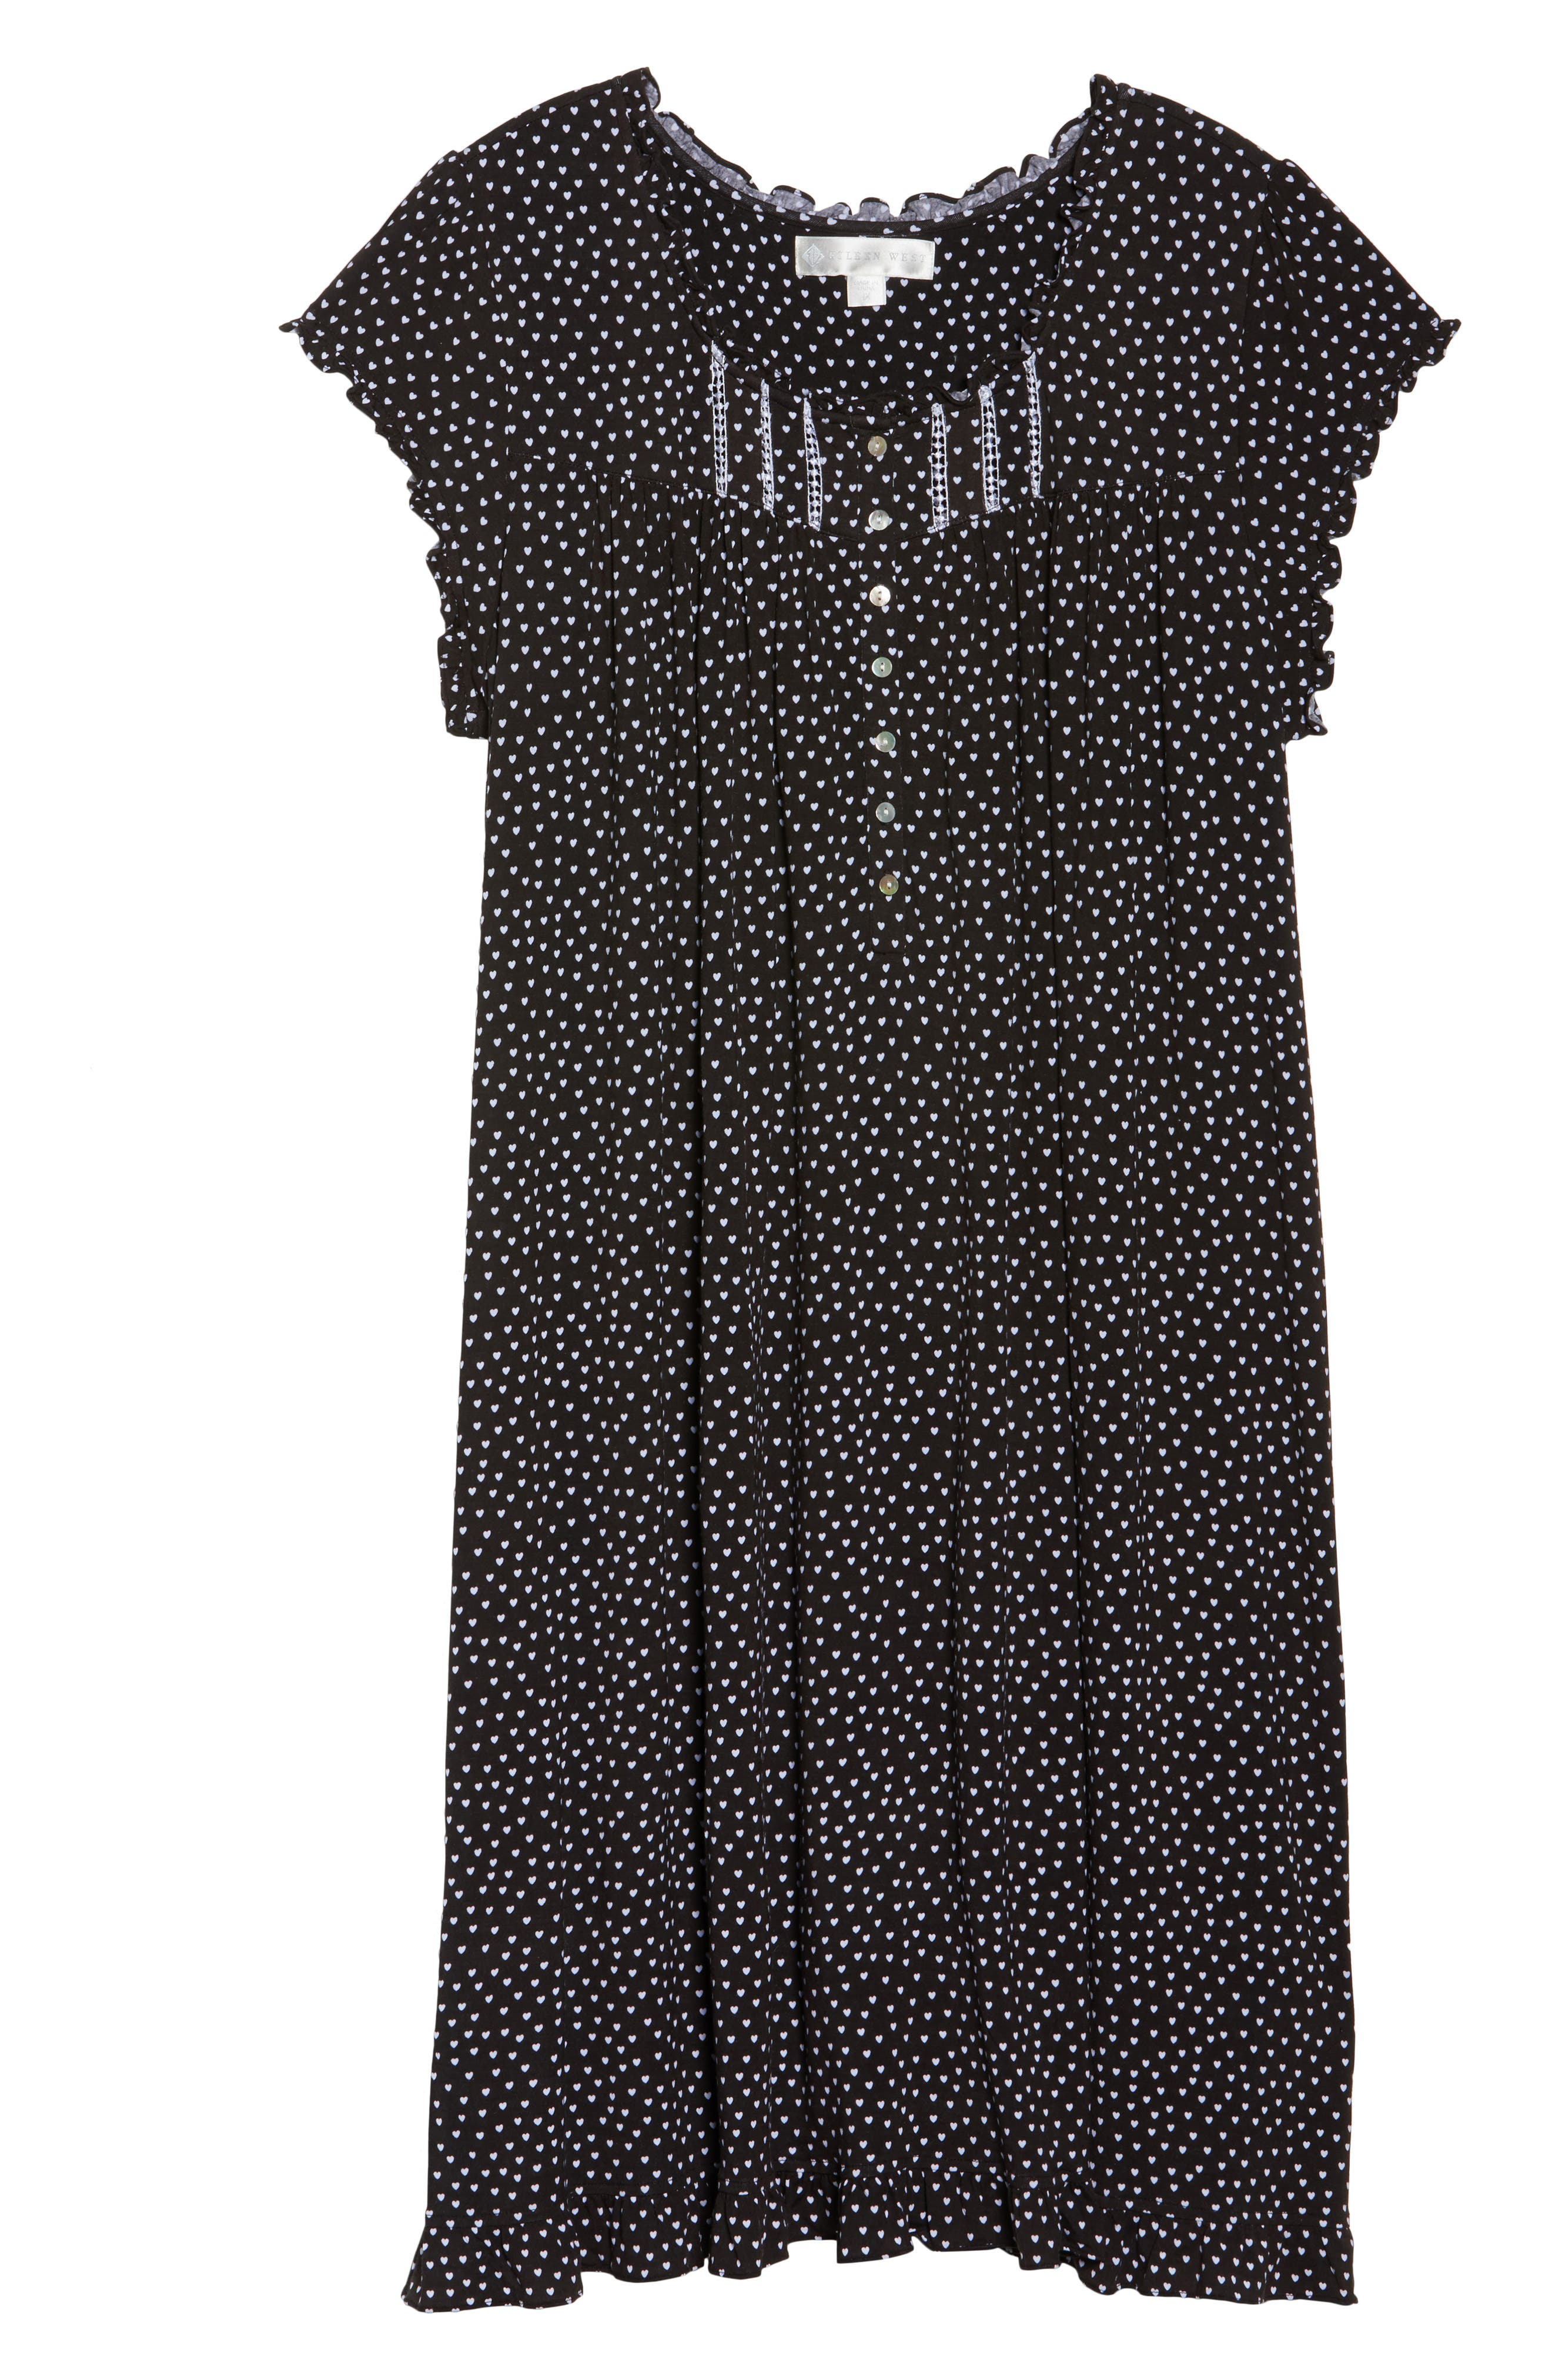 Modal Jersey Nightgown,                             Alternate thumbnail 11, color,